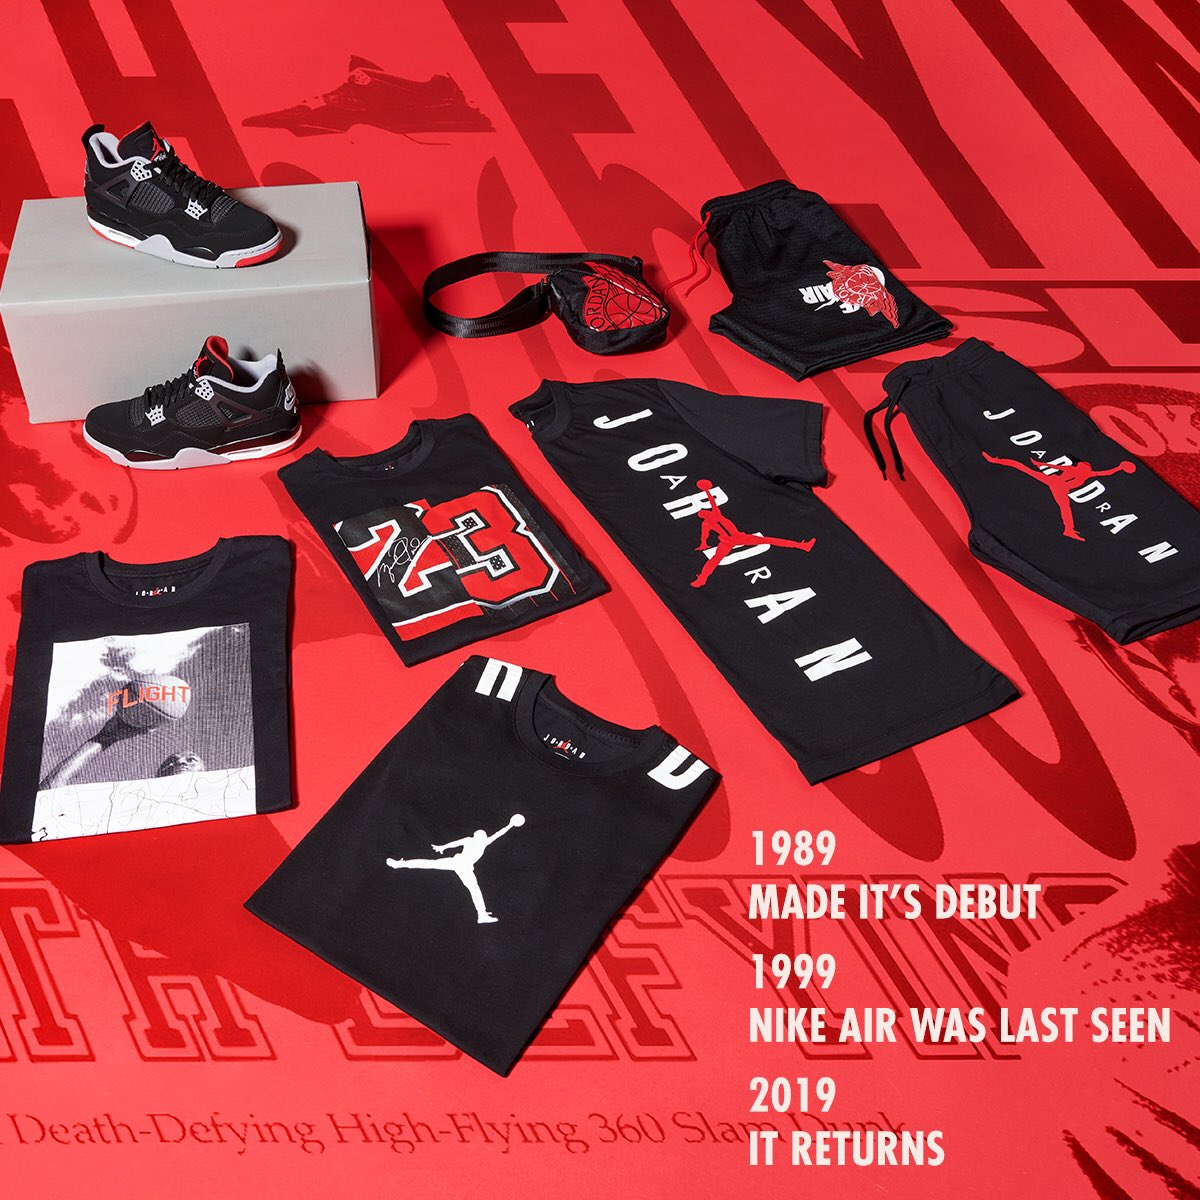 """a2e048f2758 Cop your Jordan """"Bred"""" fit now at Jimmy Jazz https   www.jimmyjazz.com jordan air-jordan-4-bred-collection  …pic.twitter.com dZllwxHAqd"""